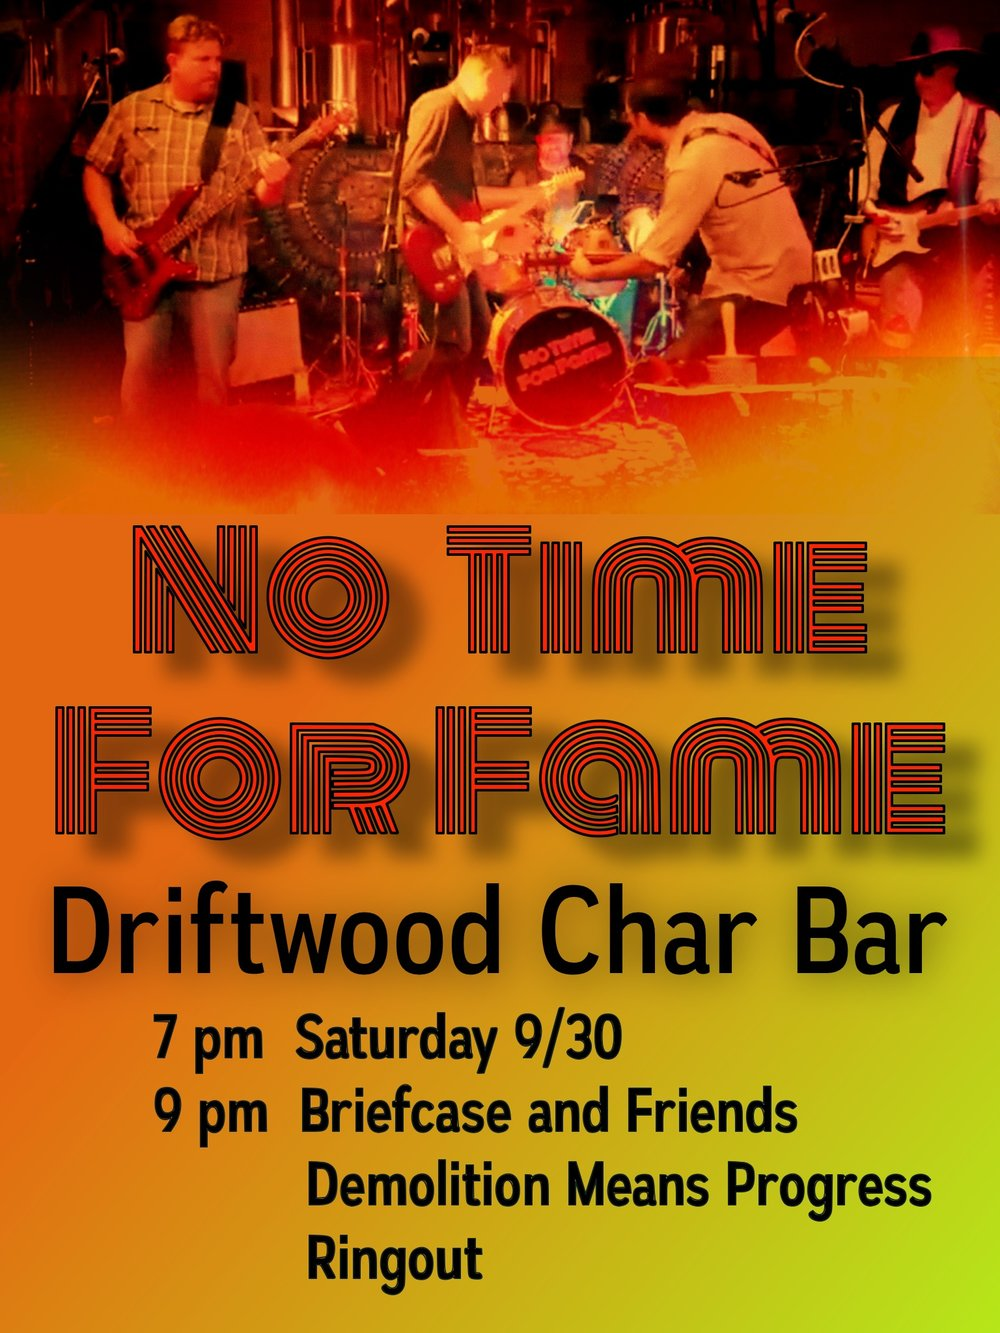 Driftwood Char bar - Minneapolis, MNSaturday, September 30, 20177:00 - 8:30 pmwith Demolition Means Progress, Briefcase, and Ringout